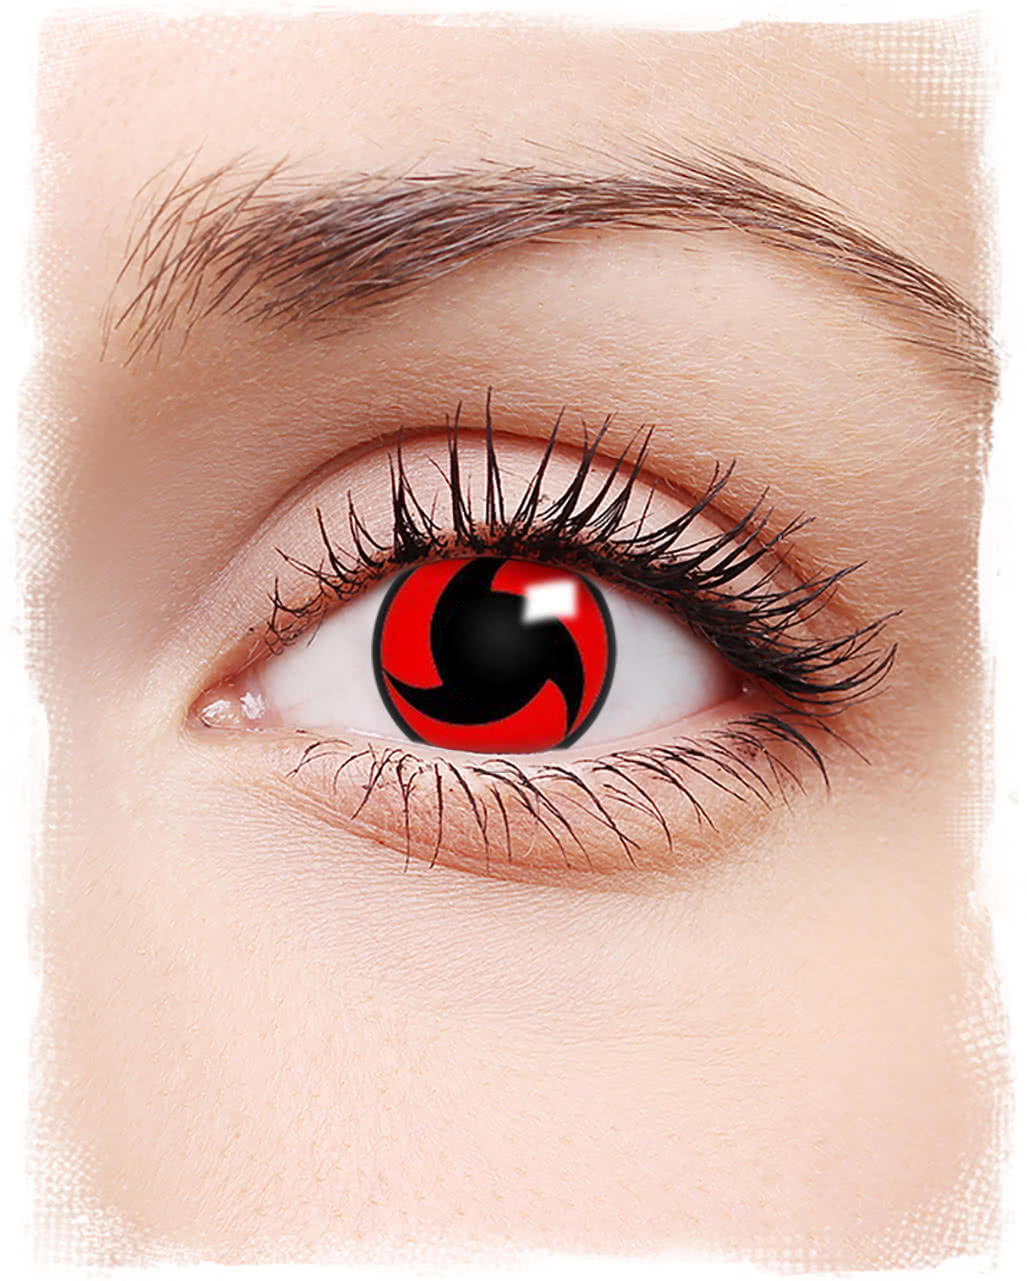 itachis mangekyou sharingan contact lenses for cosplay